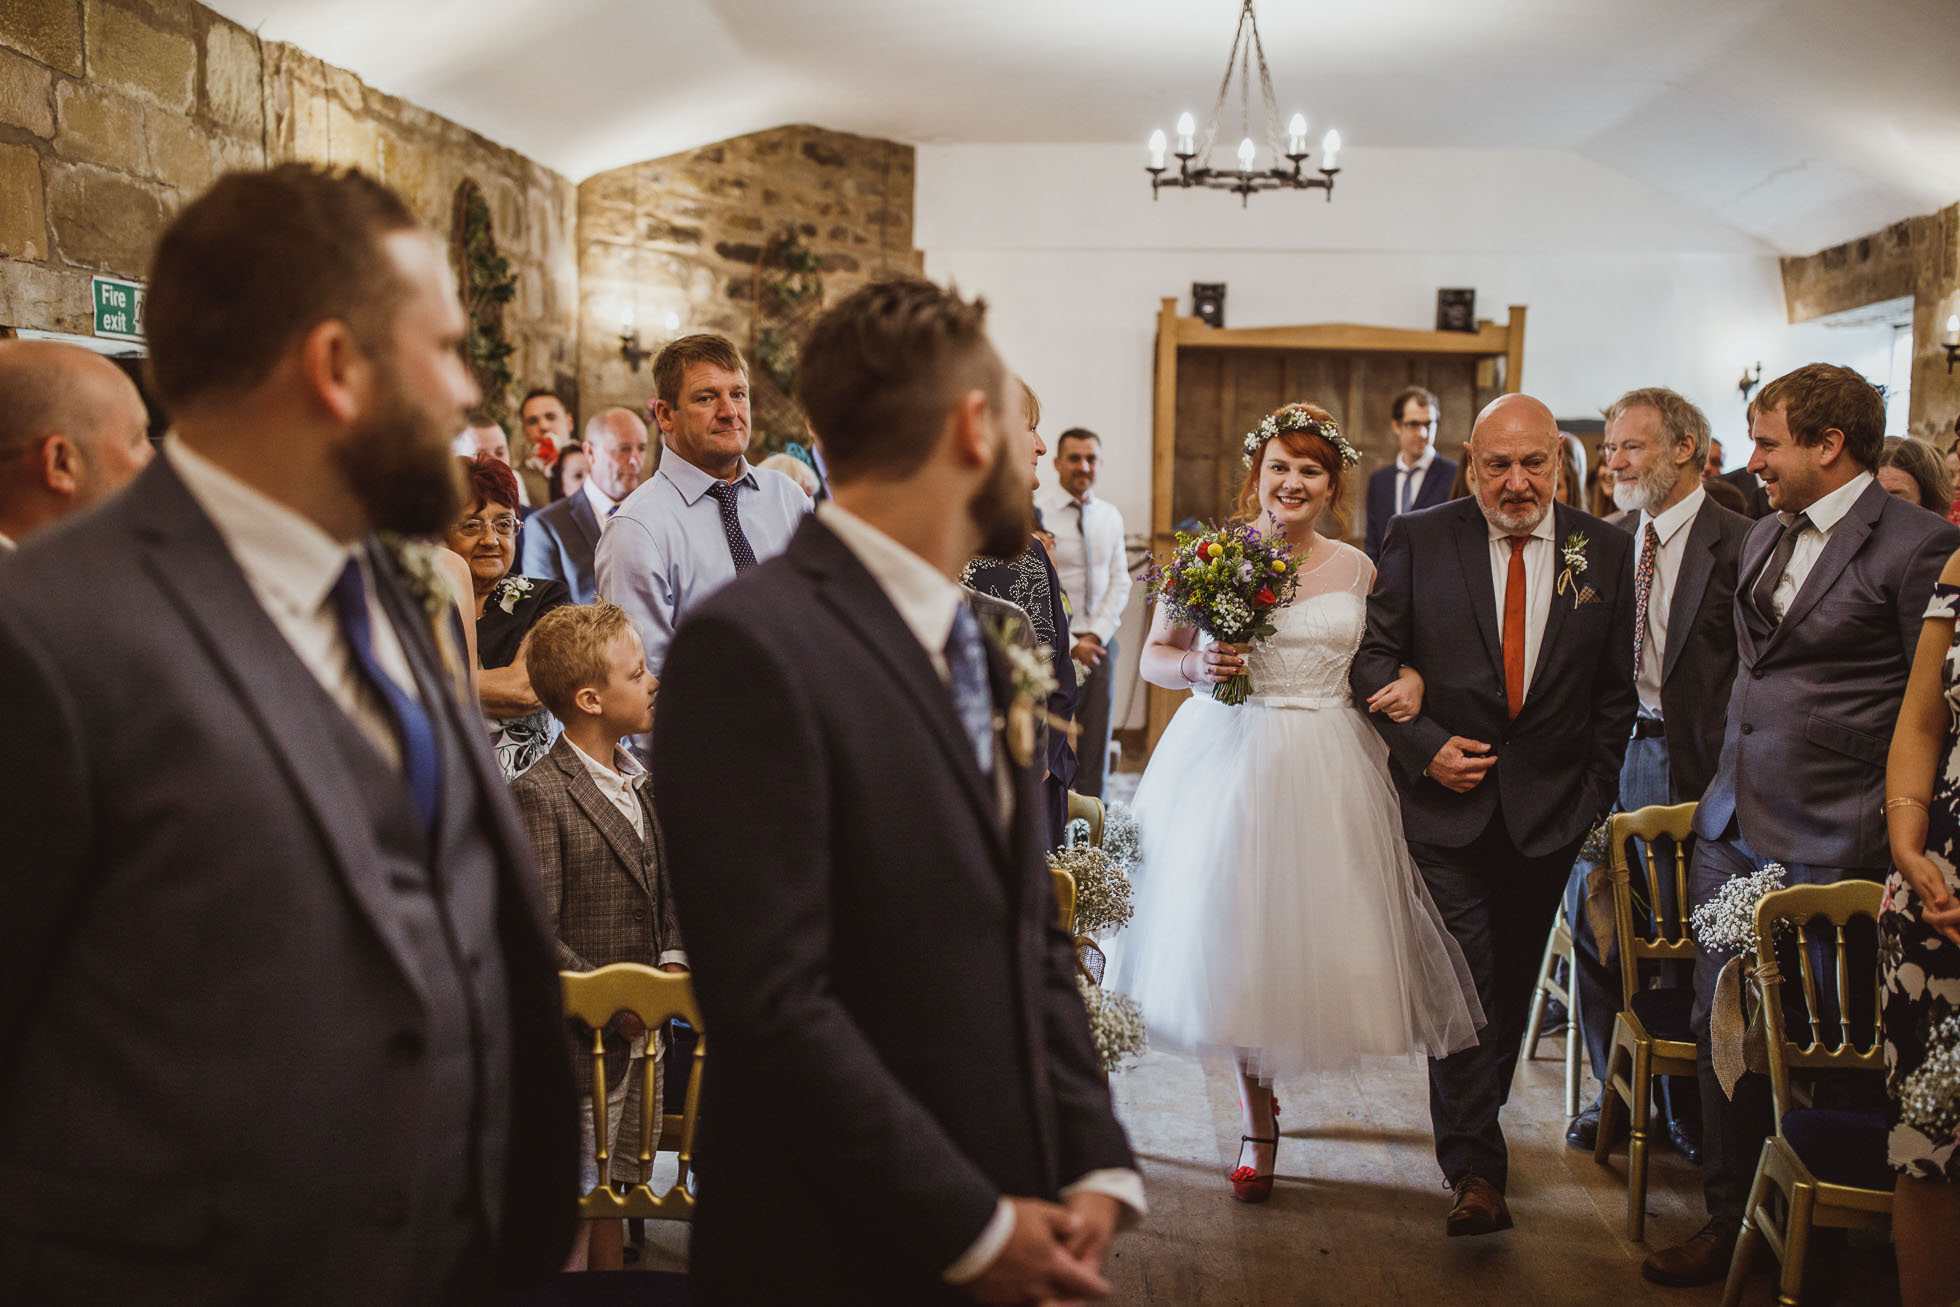 danby_castle_wedding_photographer-43.jpg